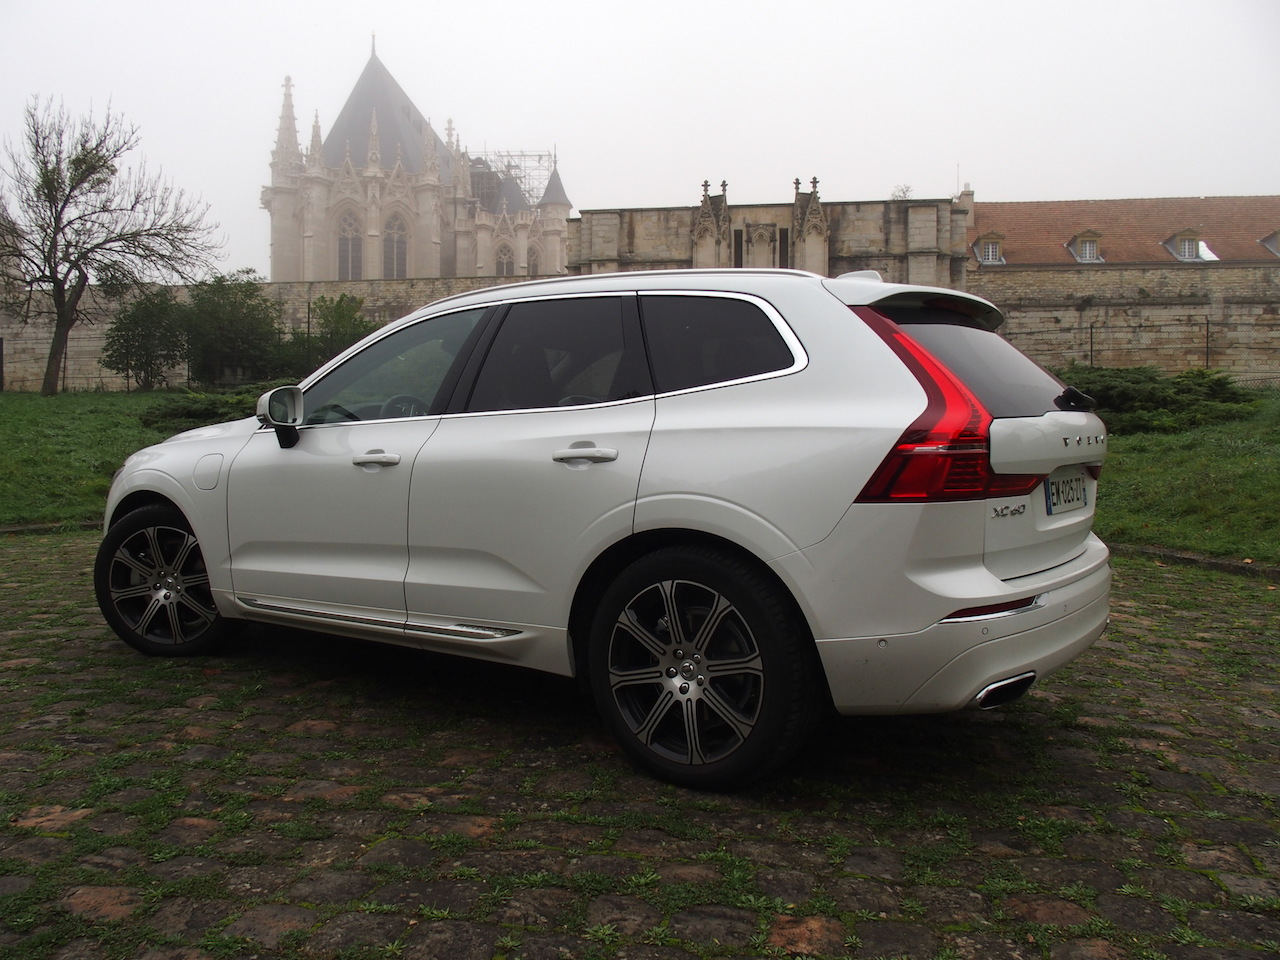 essai volvo xc60 t8 la synth se blog automobile. Black Bedroom Furniture Sets. Home Design Ideas